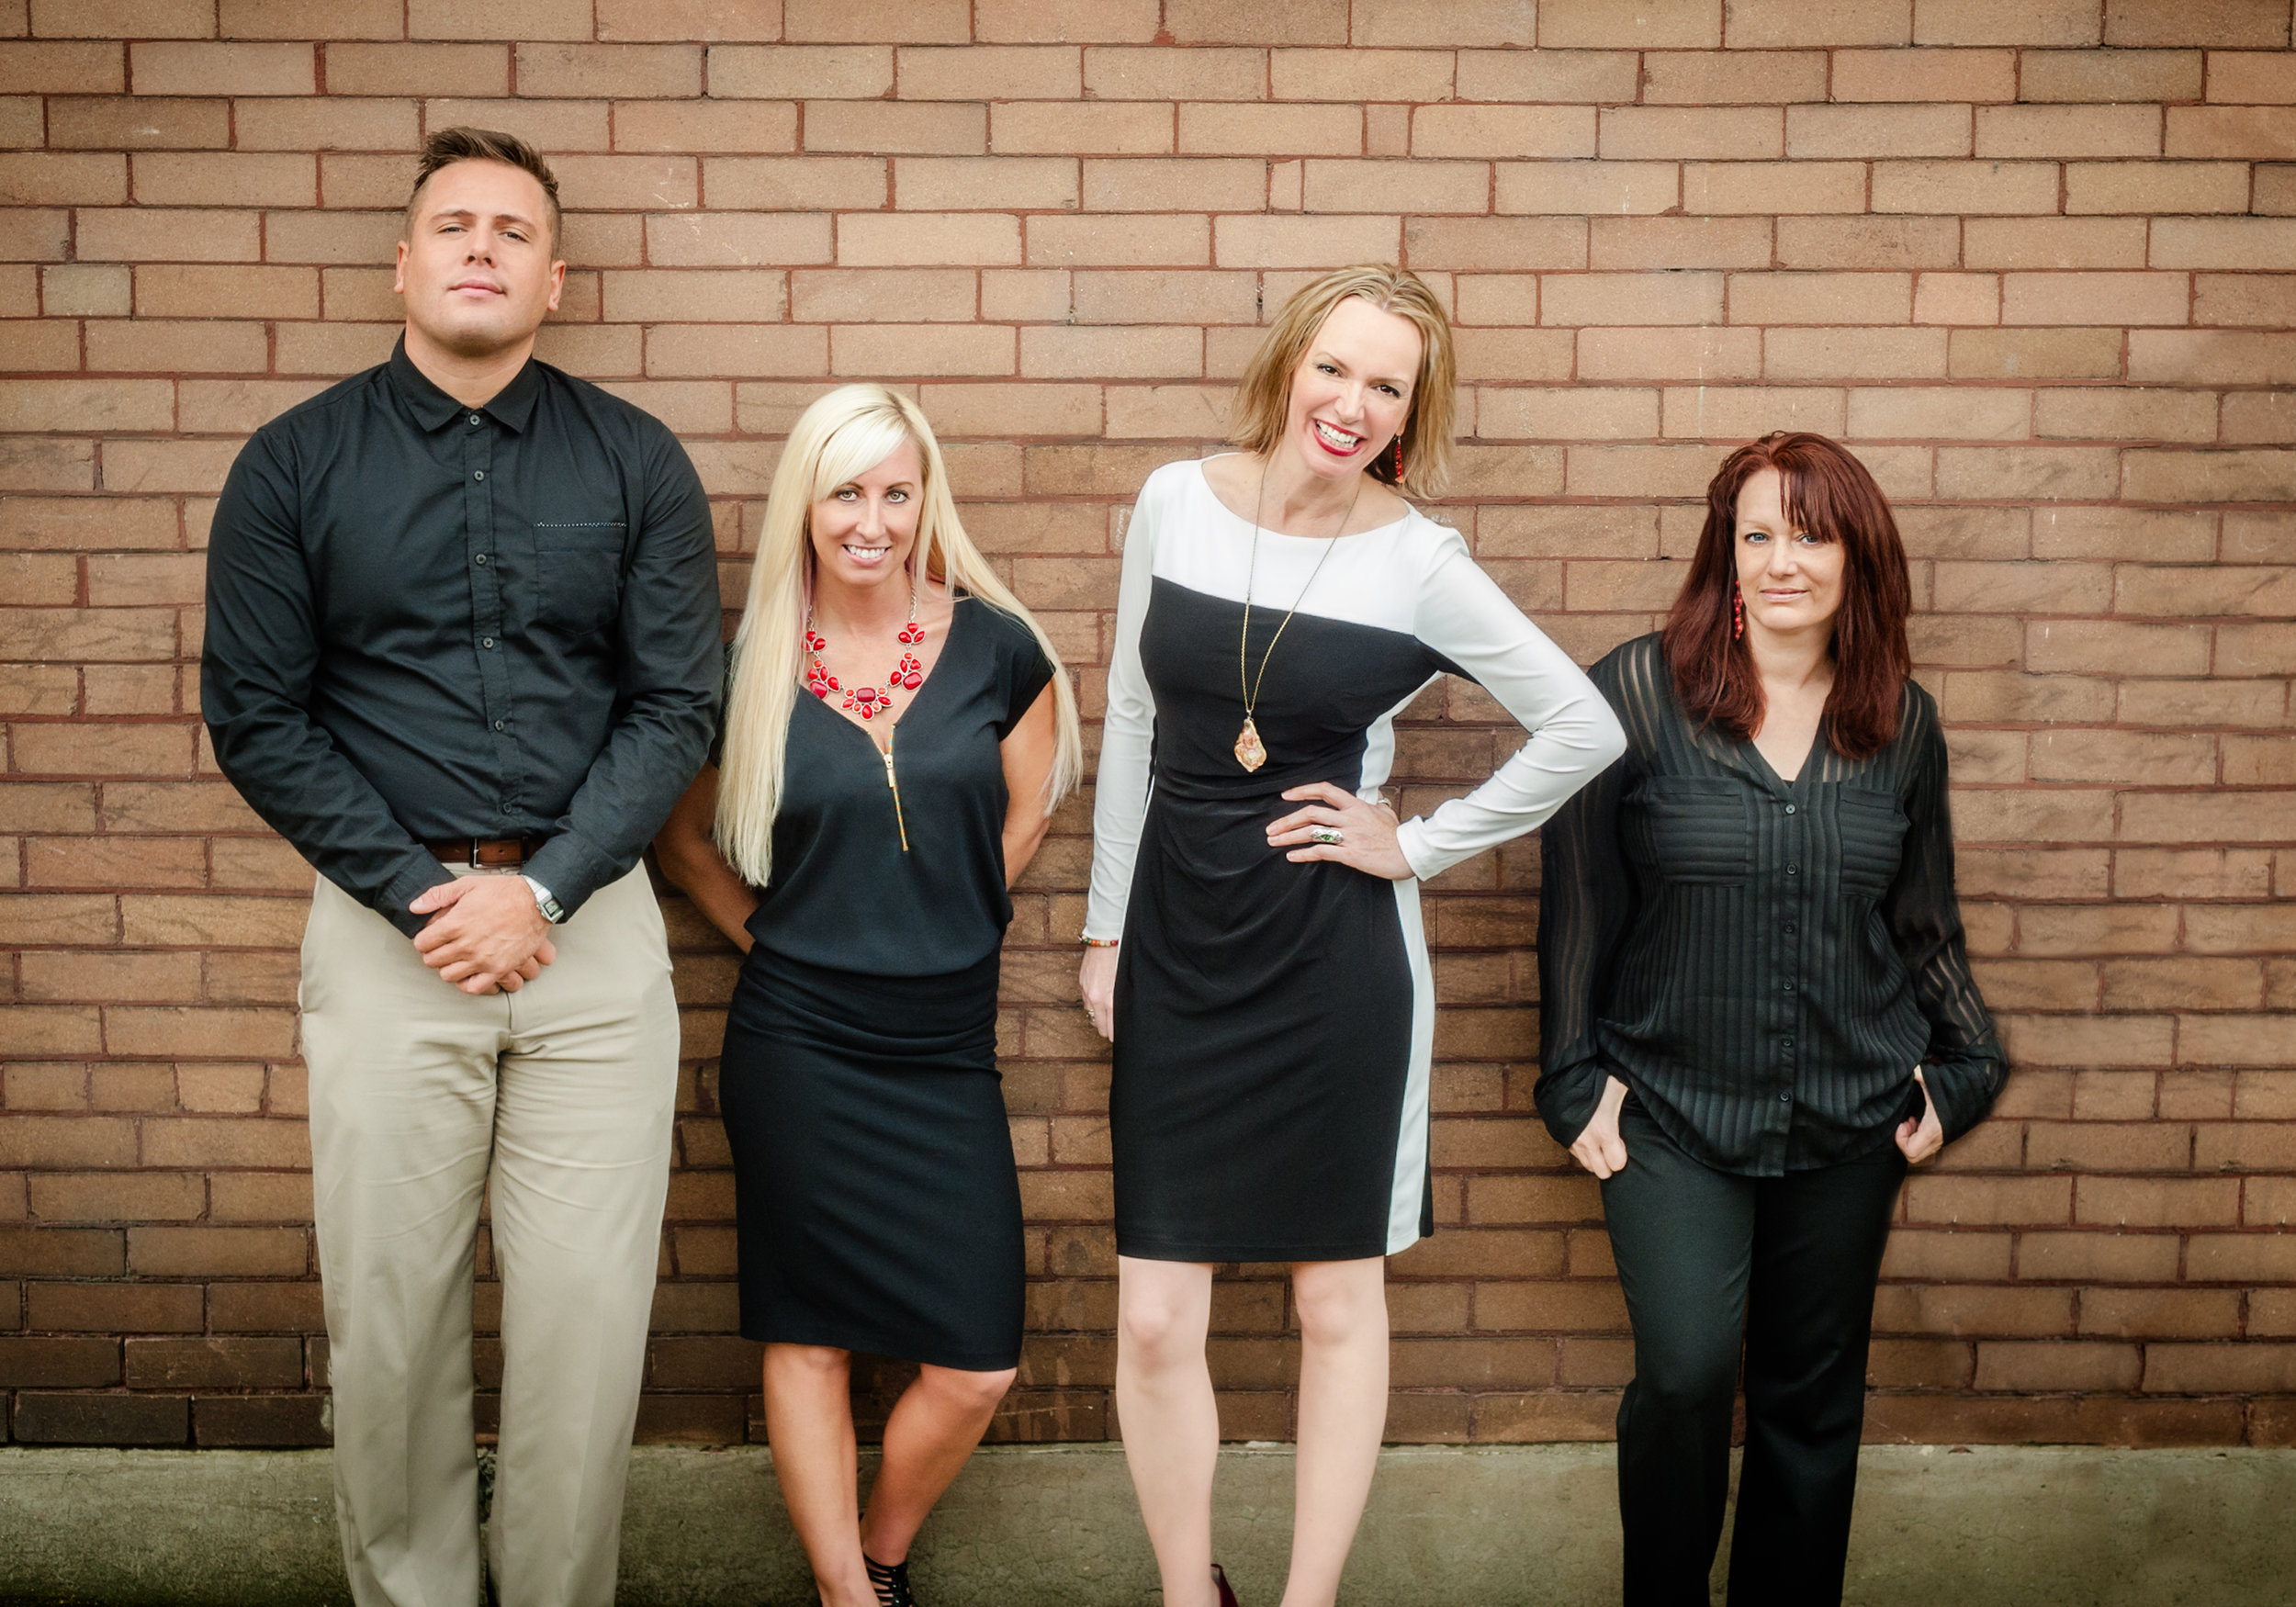 Commercial portrait of realty group by photographers at Ripe Photography in Portland, Oregon.